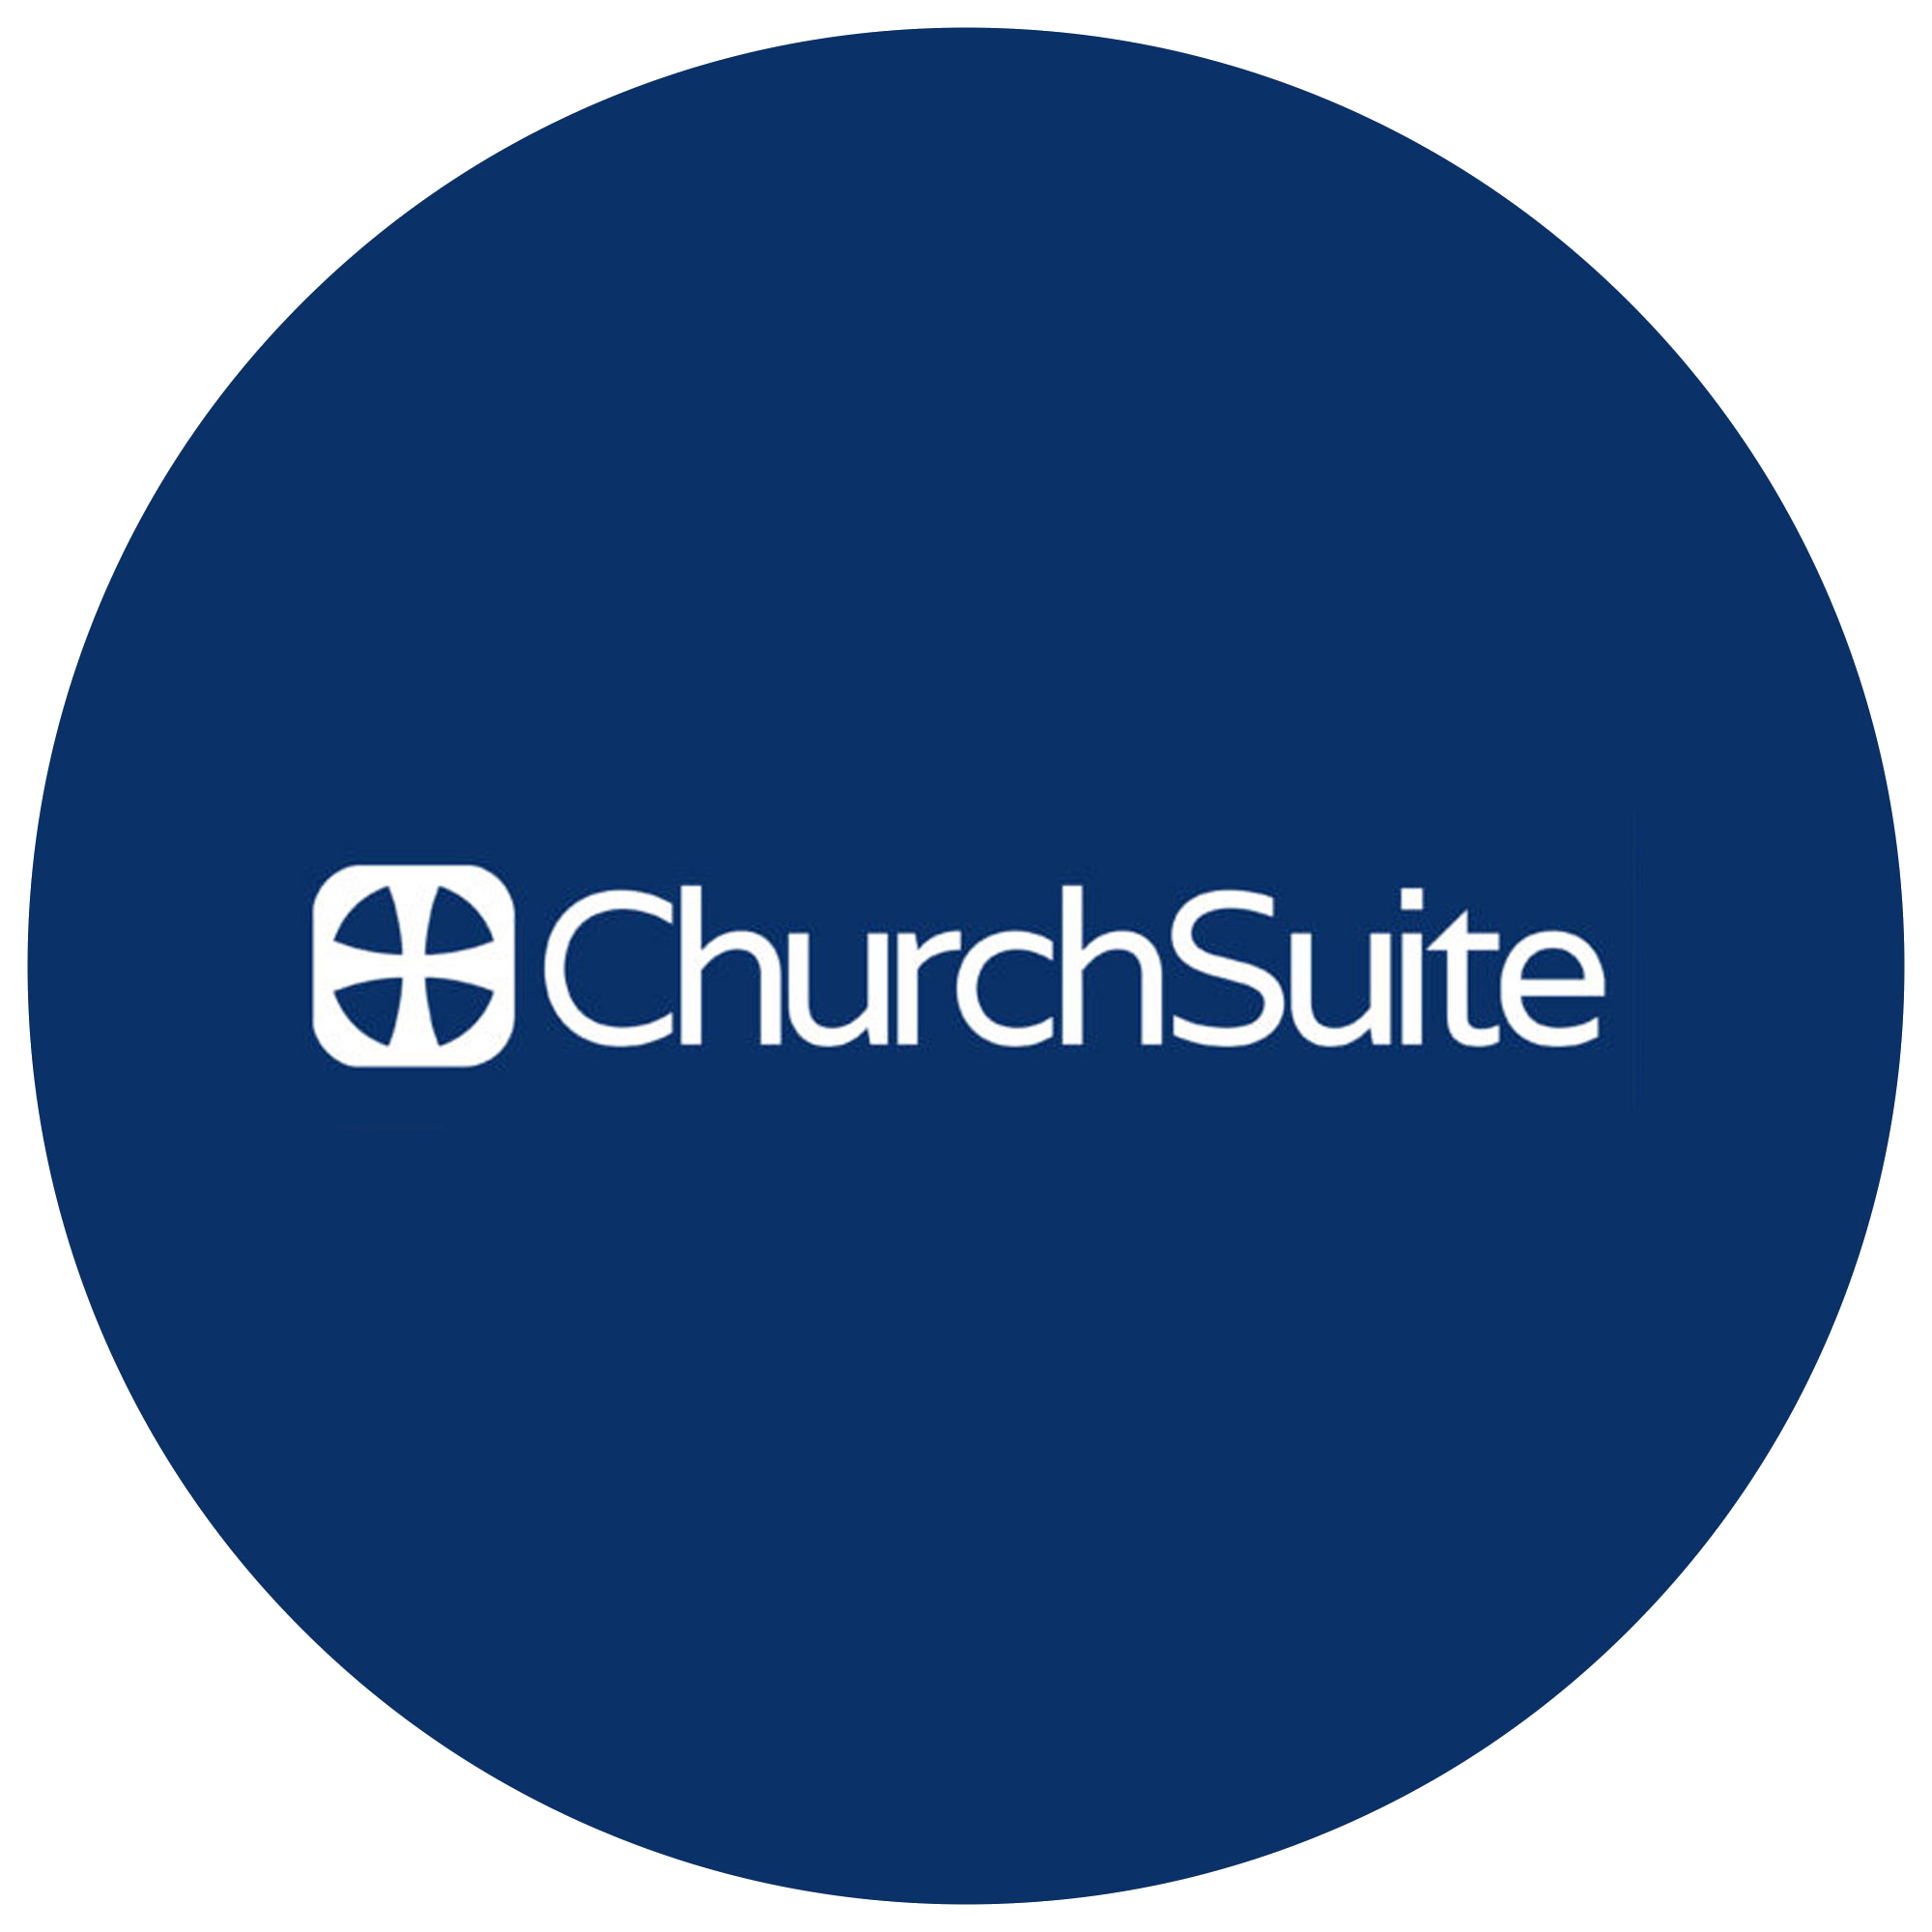 st-johns-harborne-churchsuite-circle-web.png